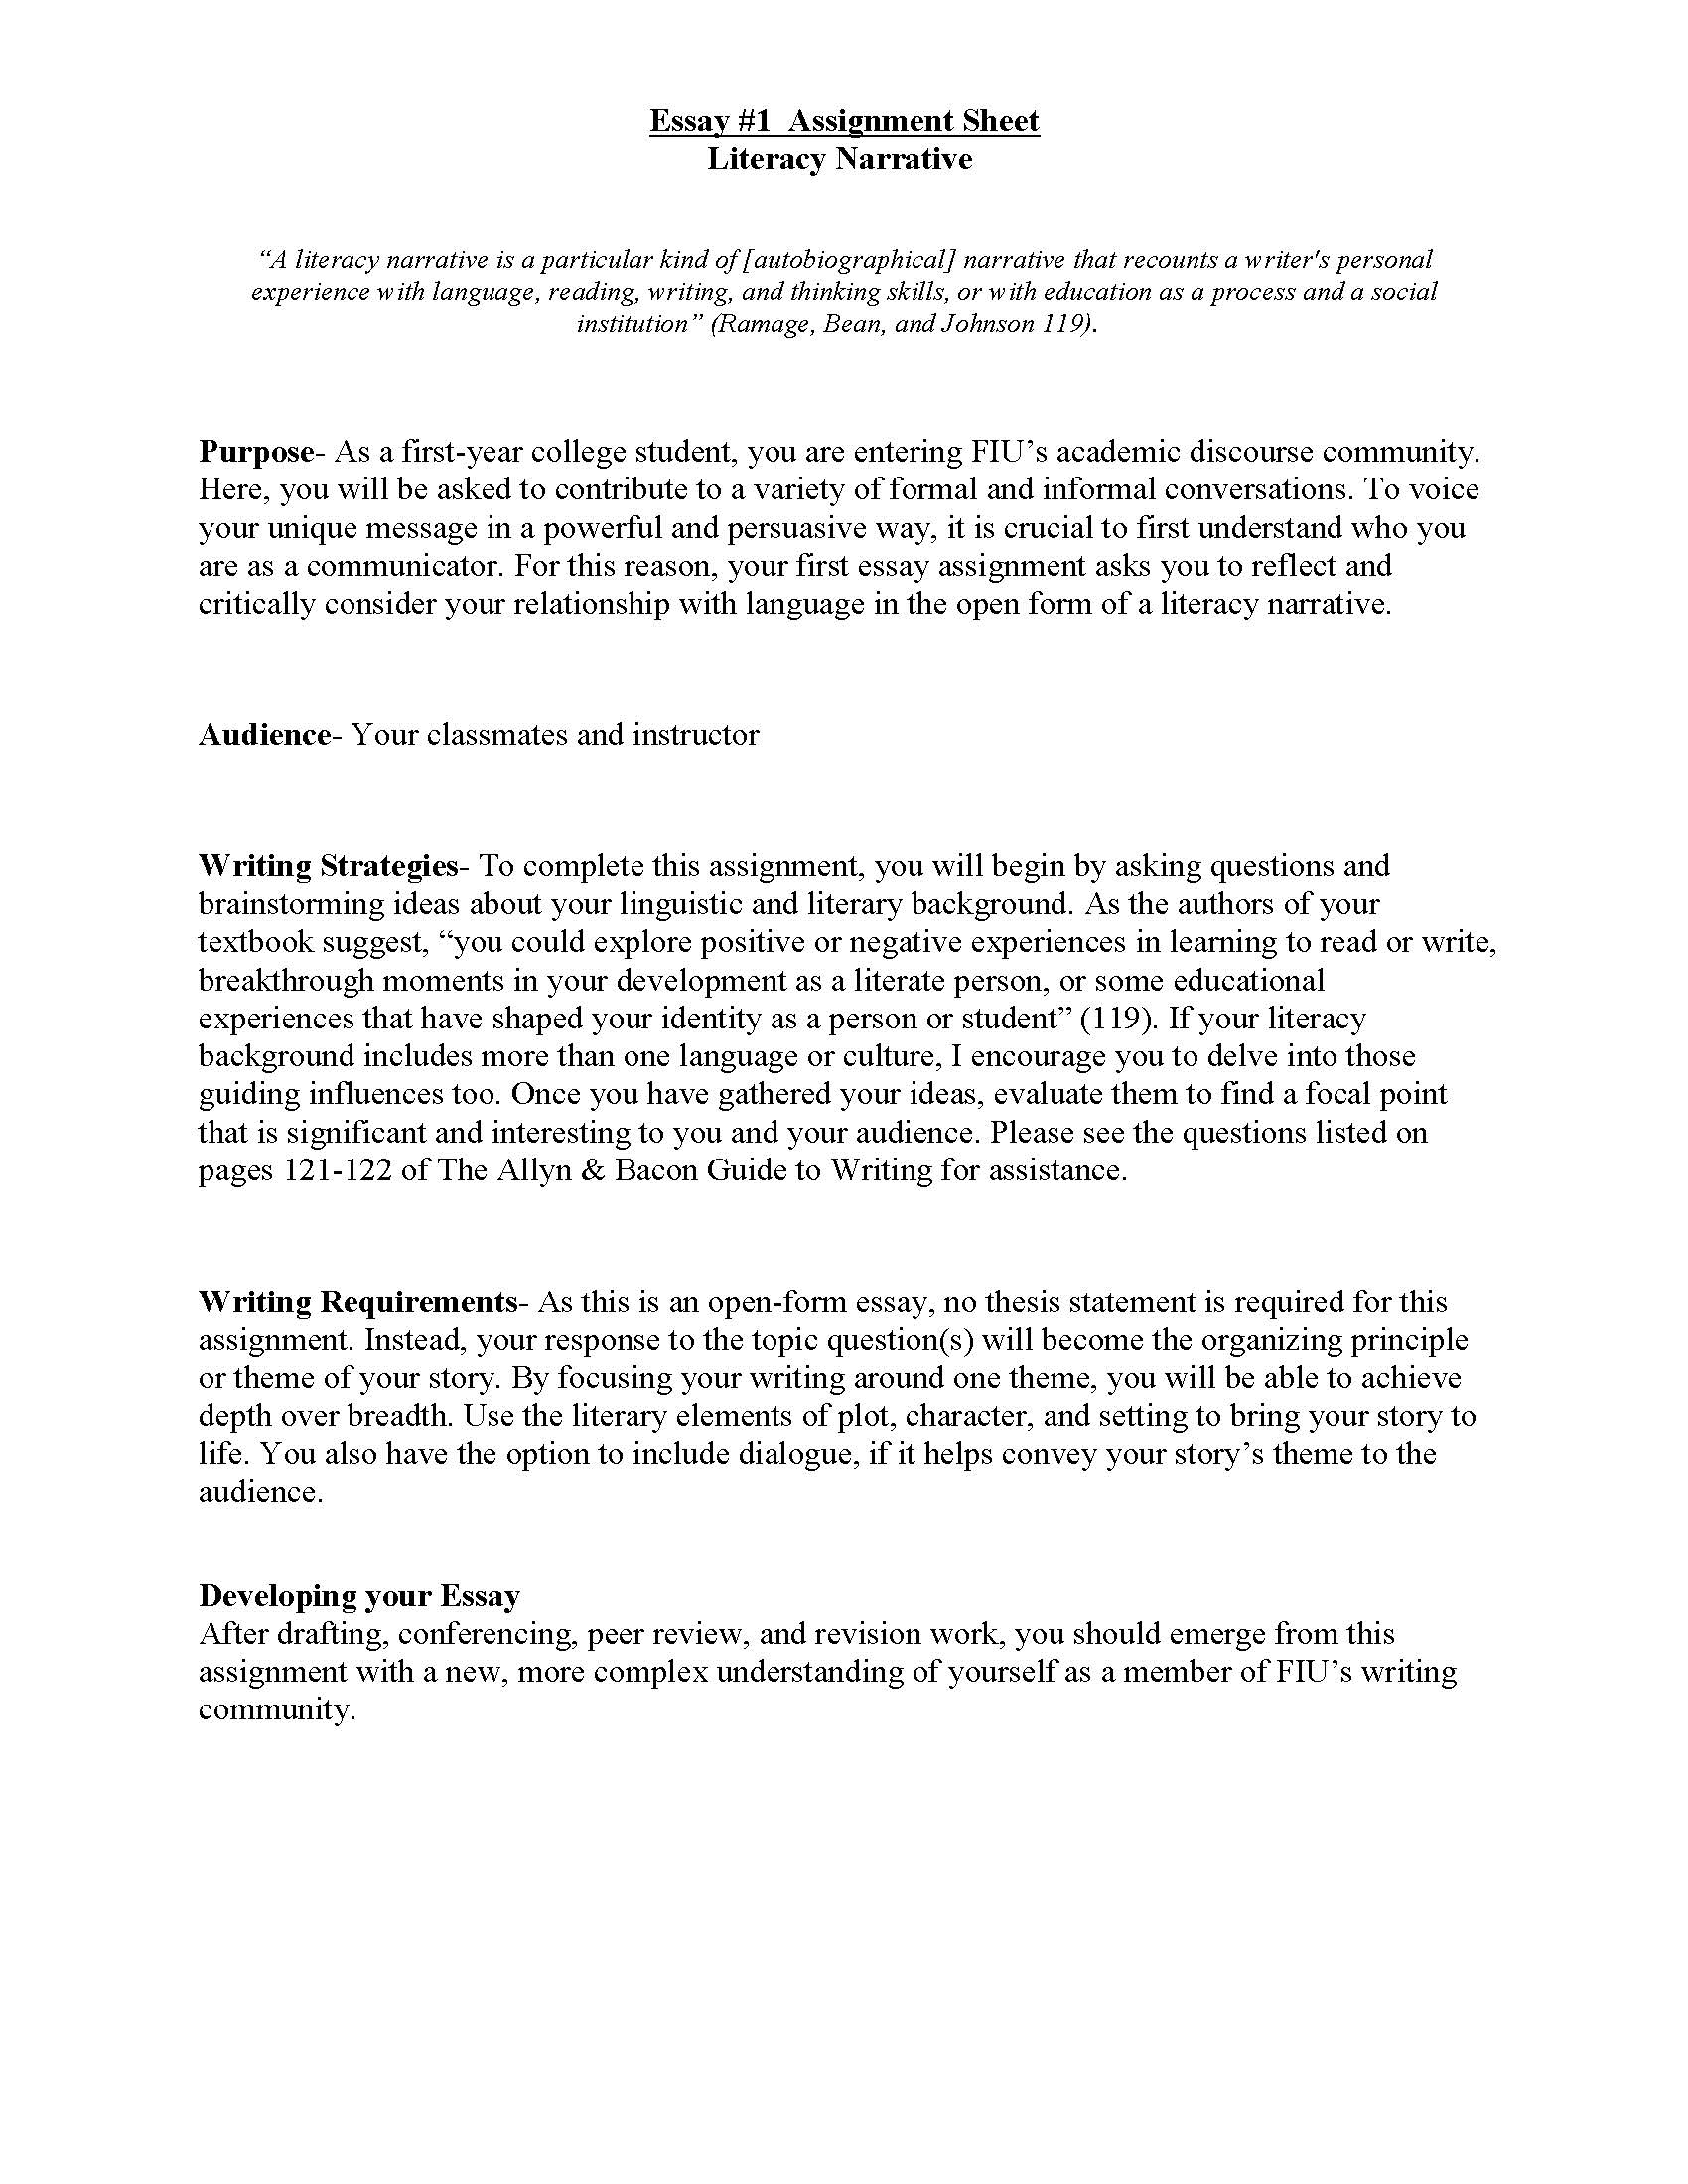 019 Narrative Essays High School Literacy Unit Assignment Spring 2012 Page 1 Unique Essay Examples Pdf Personal Full